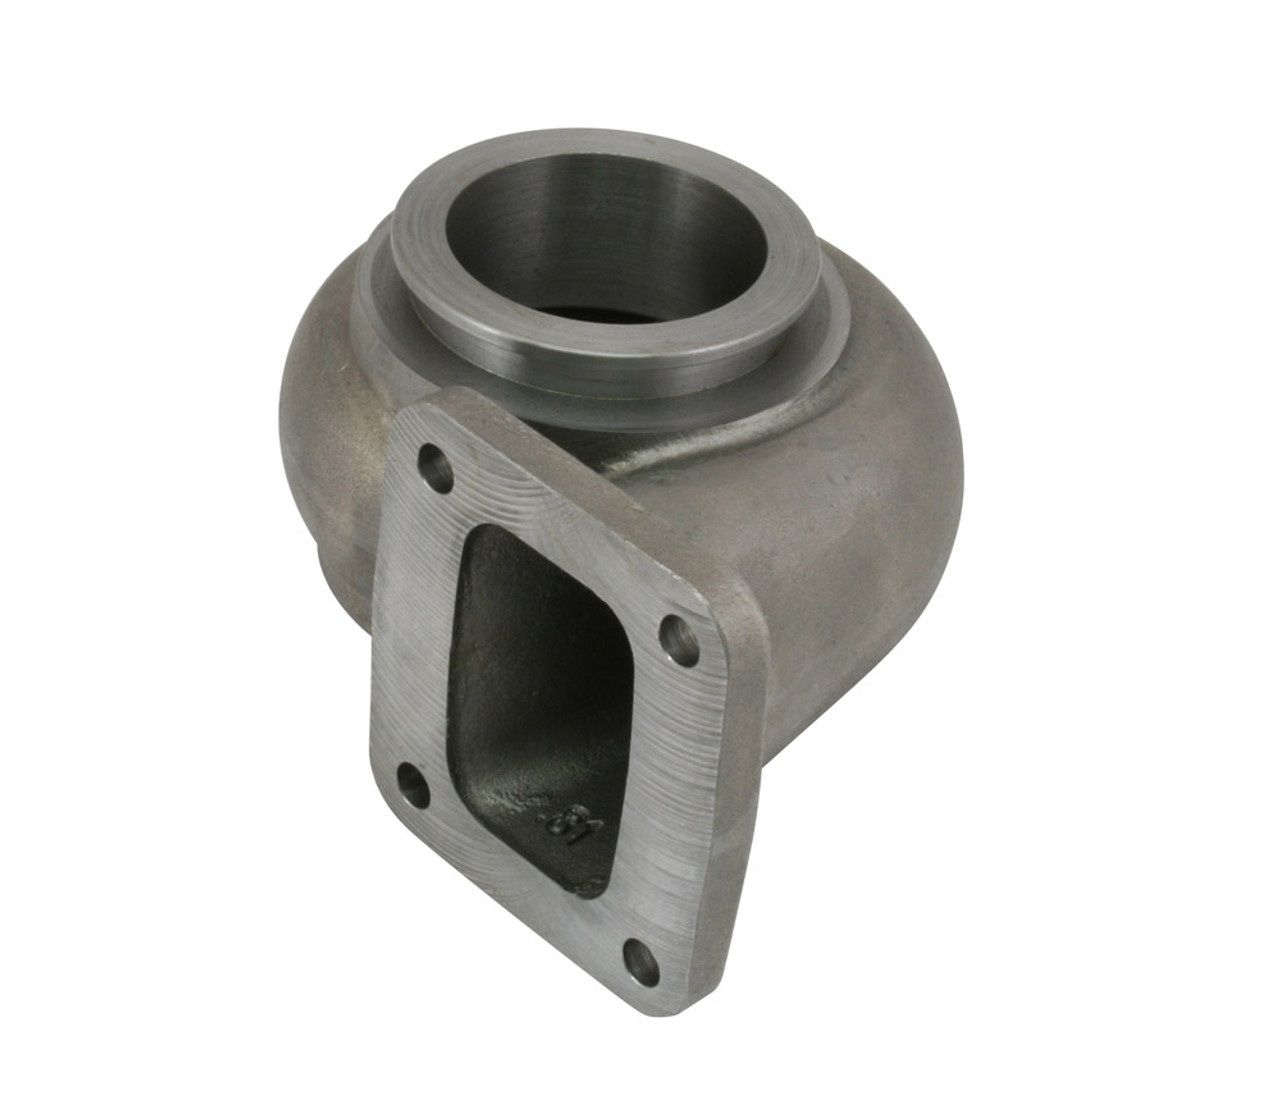 "T4 Inlet 3.625"" V Band Outlet Turbine Housing"